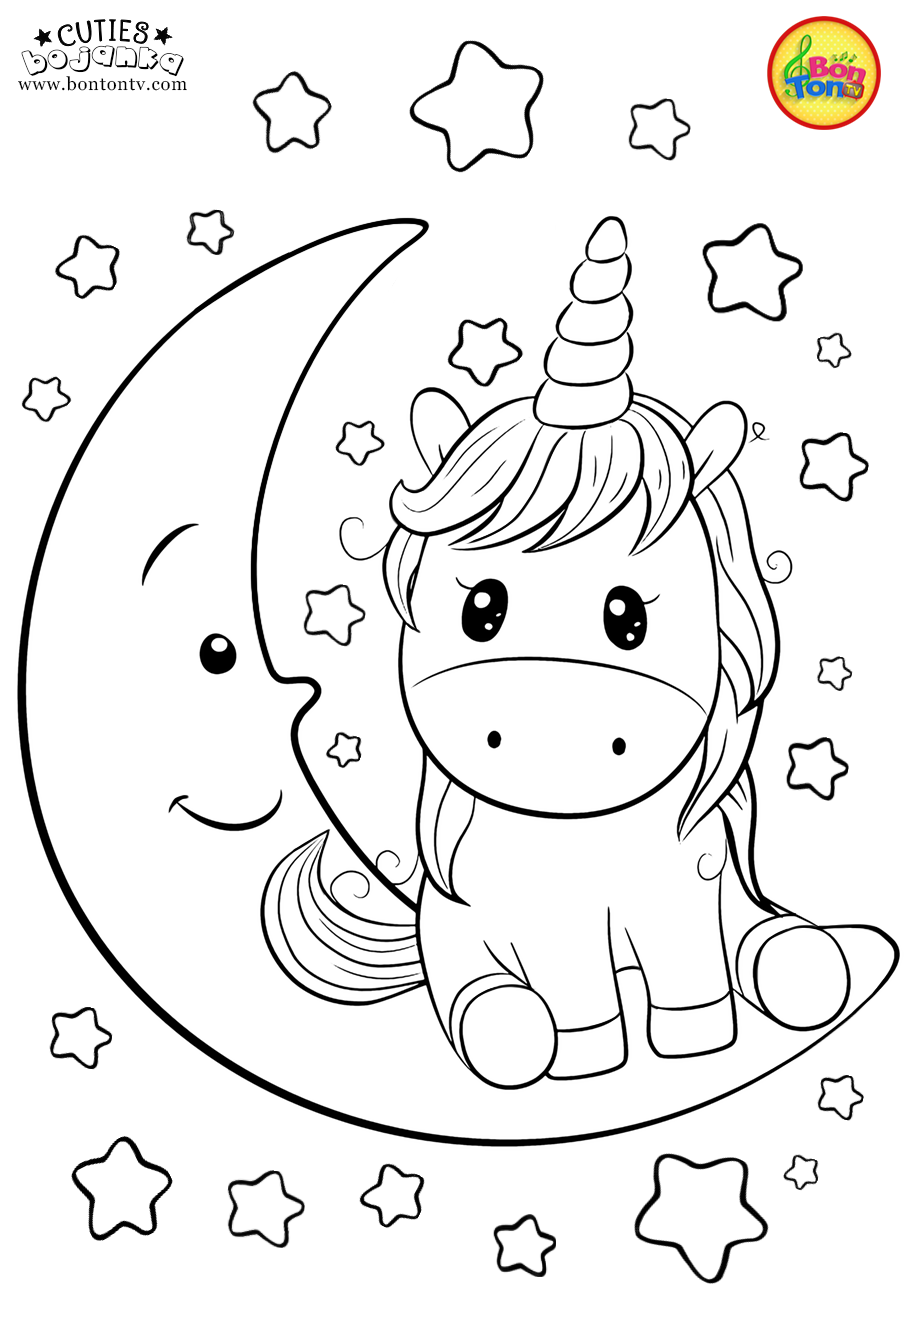 Cuties Coloring Pages for Kids - Free Preschool Printables - Slatkice bojanke - Cute Animal Coloring Books by BonTon TV - Free Kindergarten Worksheets, Preschool Activities for Kids - bojanke za djecu - radni listovi - BonTon TV - Zabavni portal za djecu - Igrice za djecu, pjesme i pjesmice za djecu, priče i bajke, basne, crtići, bojanke, slikovnice